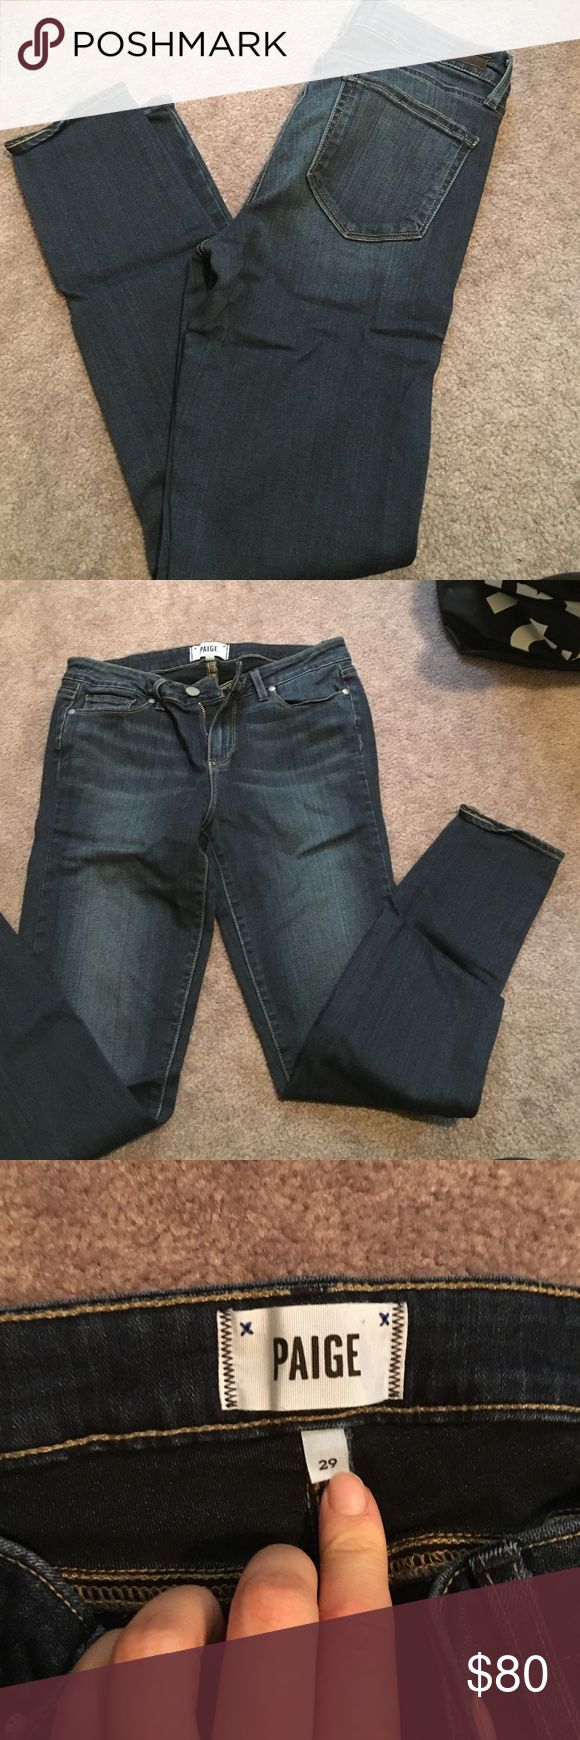 """Paige verdugo ankle jeans Paige premium denim verdugo ankle skinny jeans worn once. In """"Nottingham"""" color Paige Jeans Jeans Skinny"""